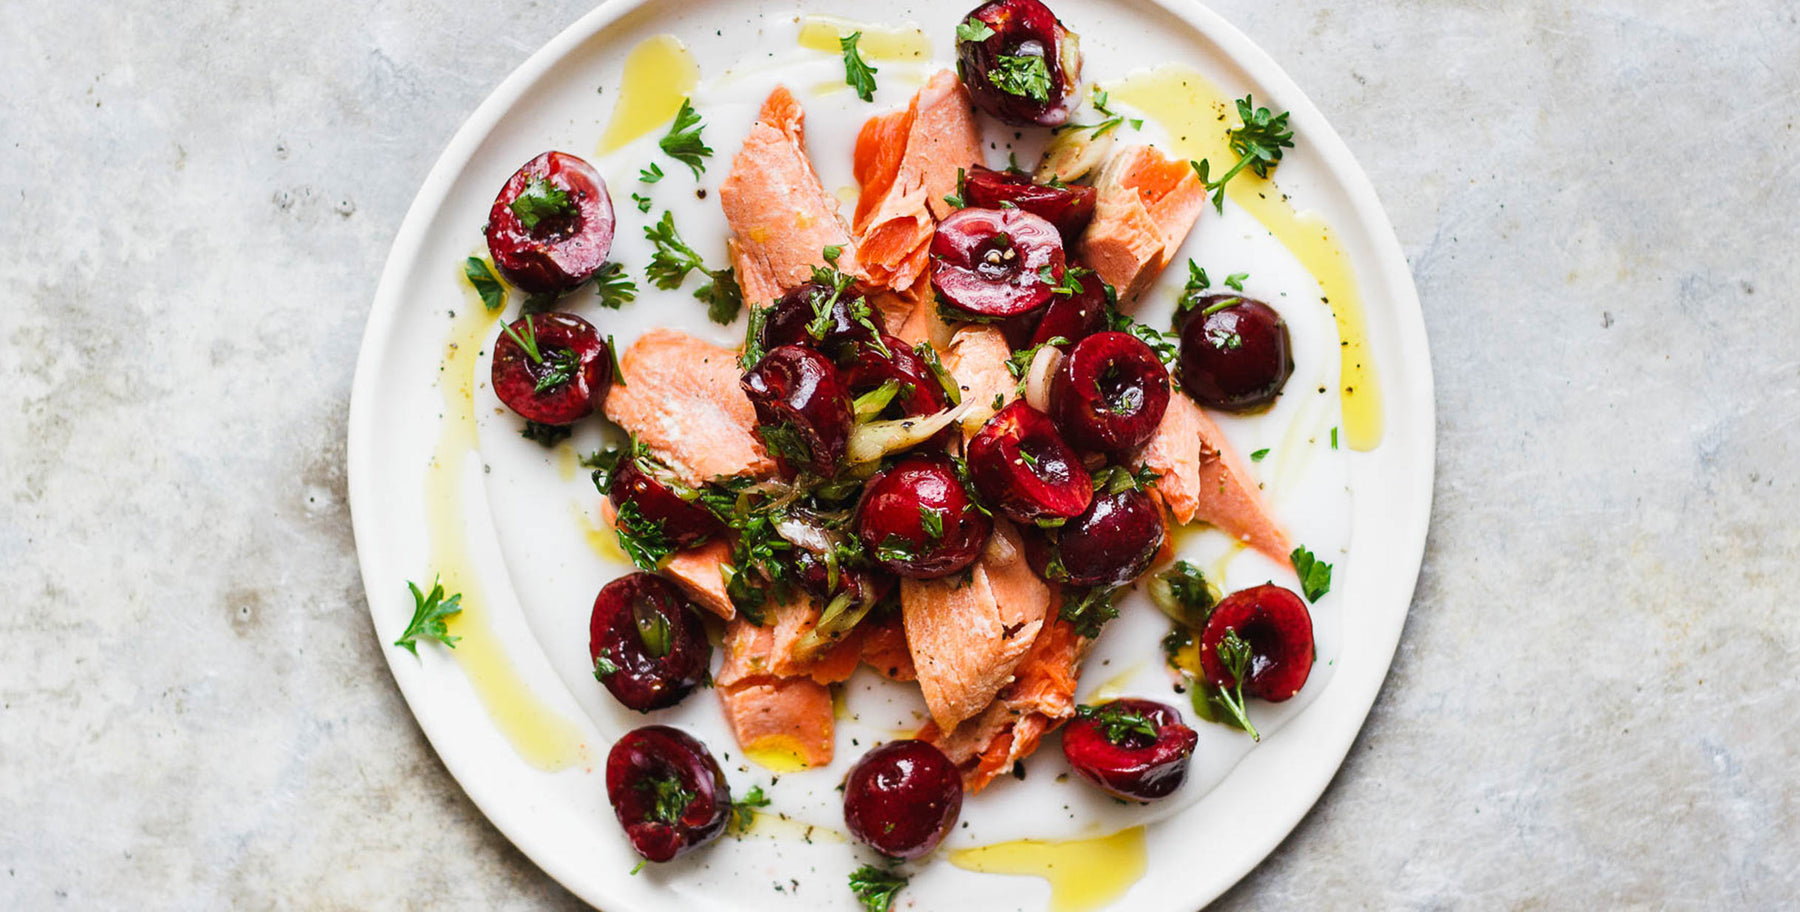 Poached Salmon with Savory Cherry Salad Recipe